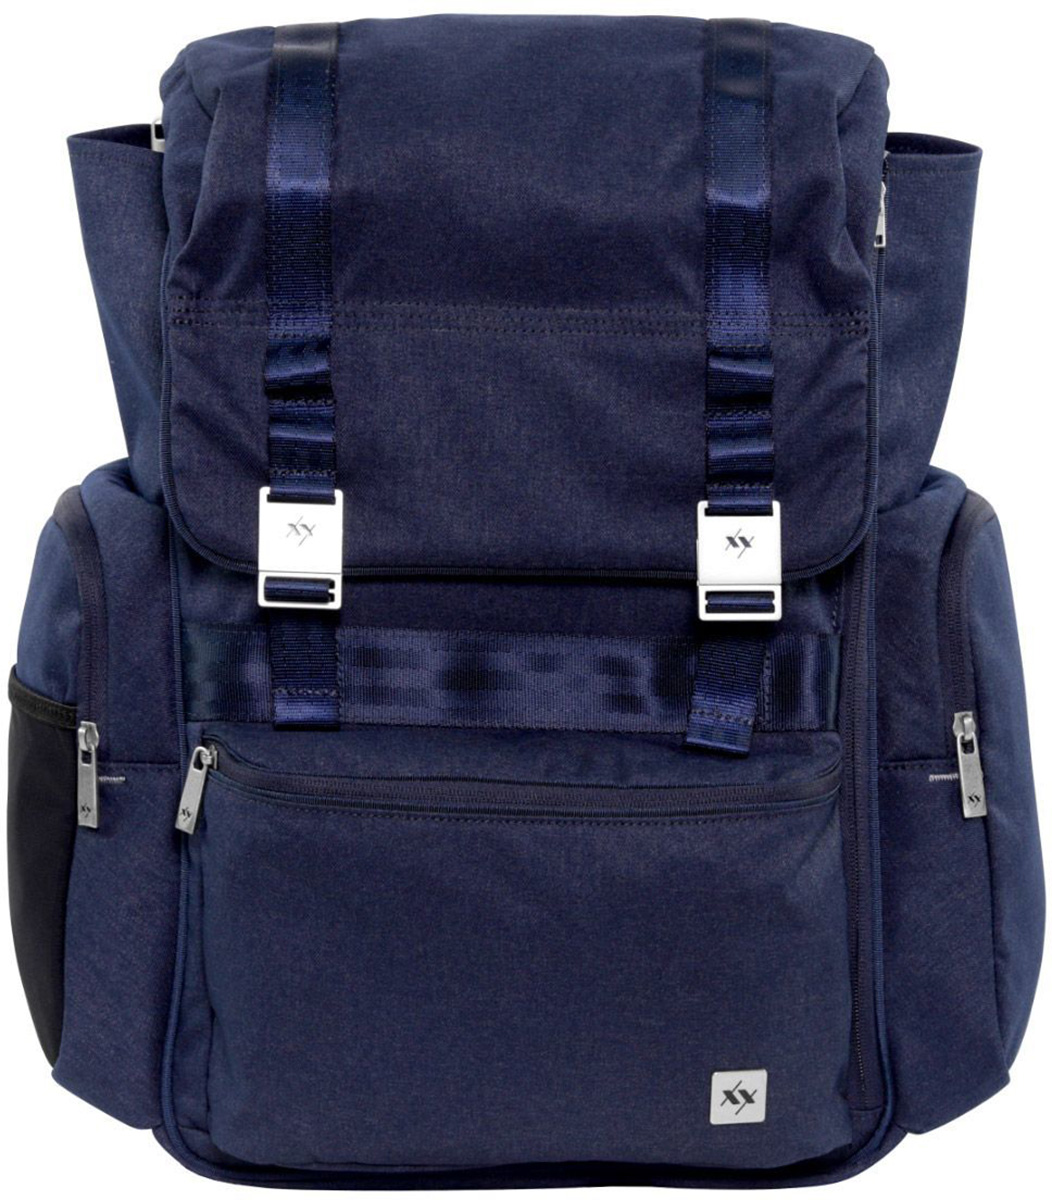 Ju Be Hatch Backpack Diaper Bag Gene